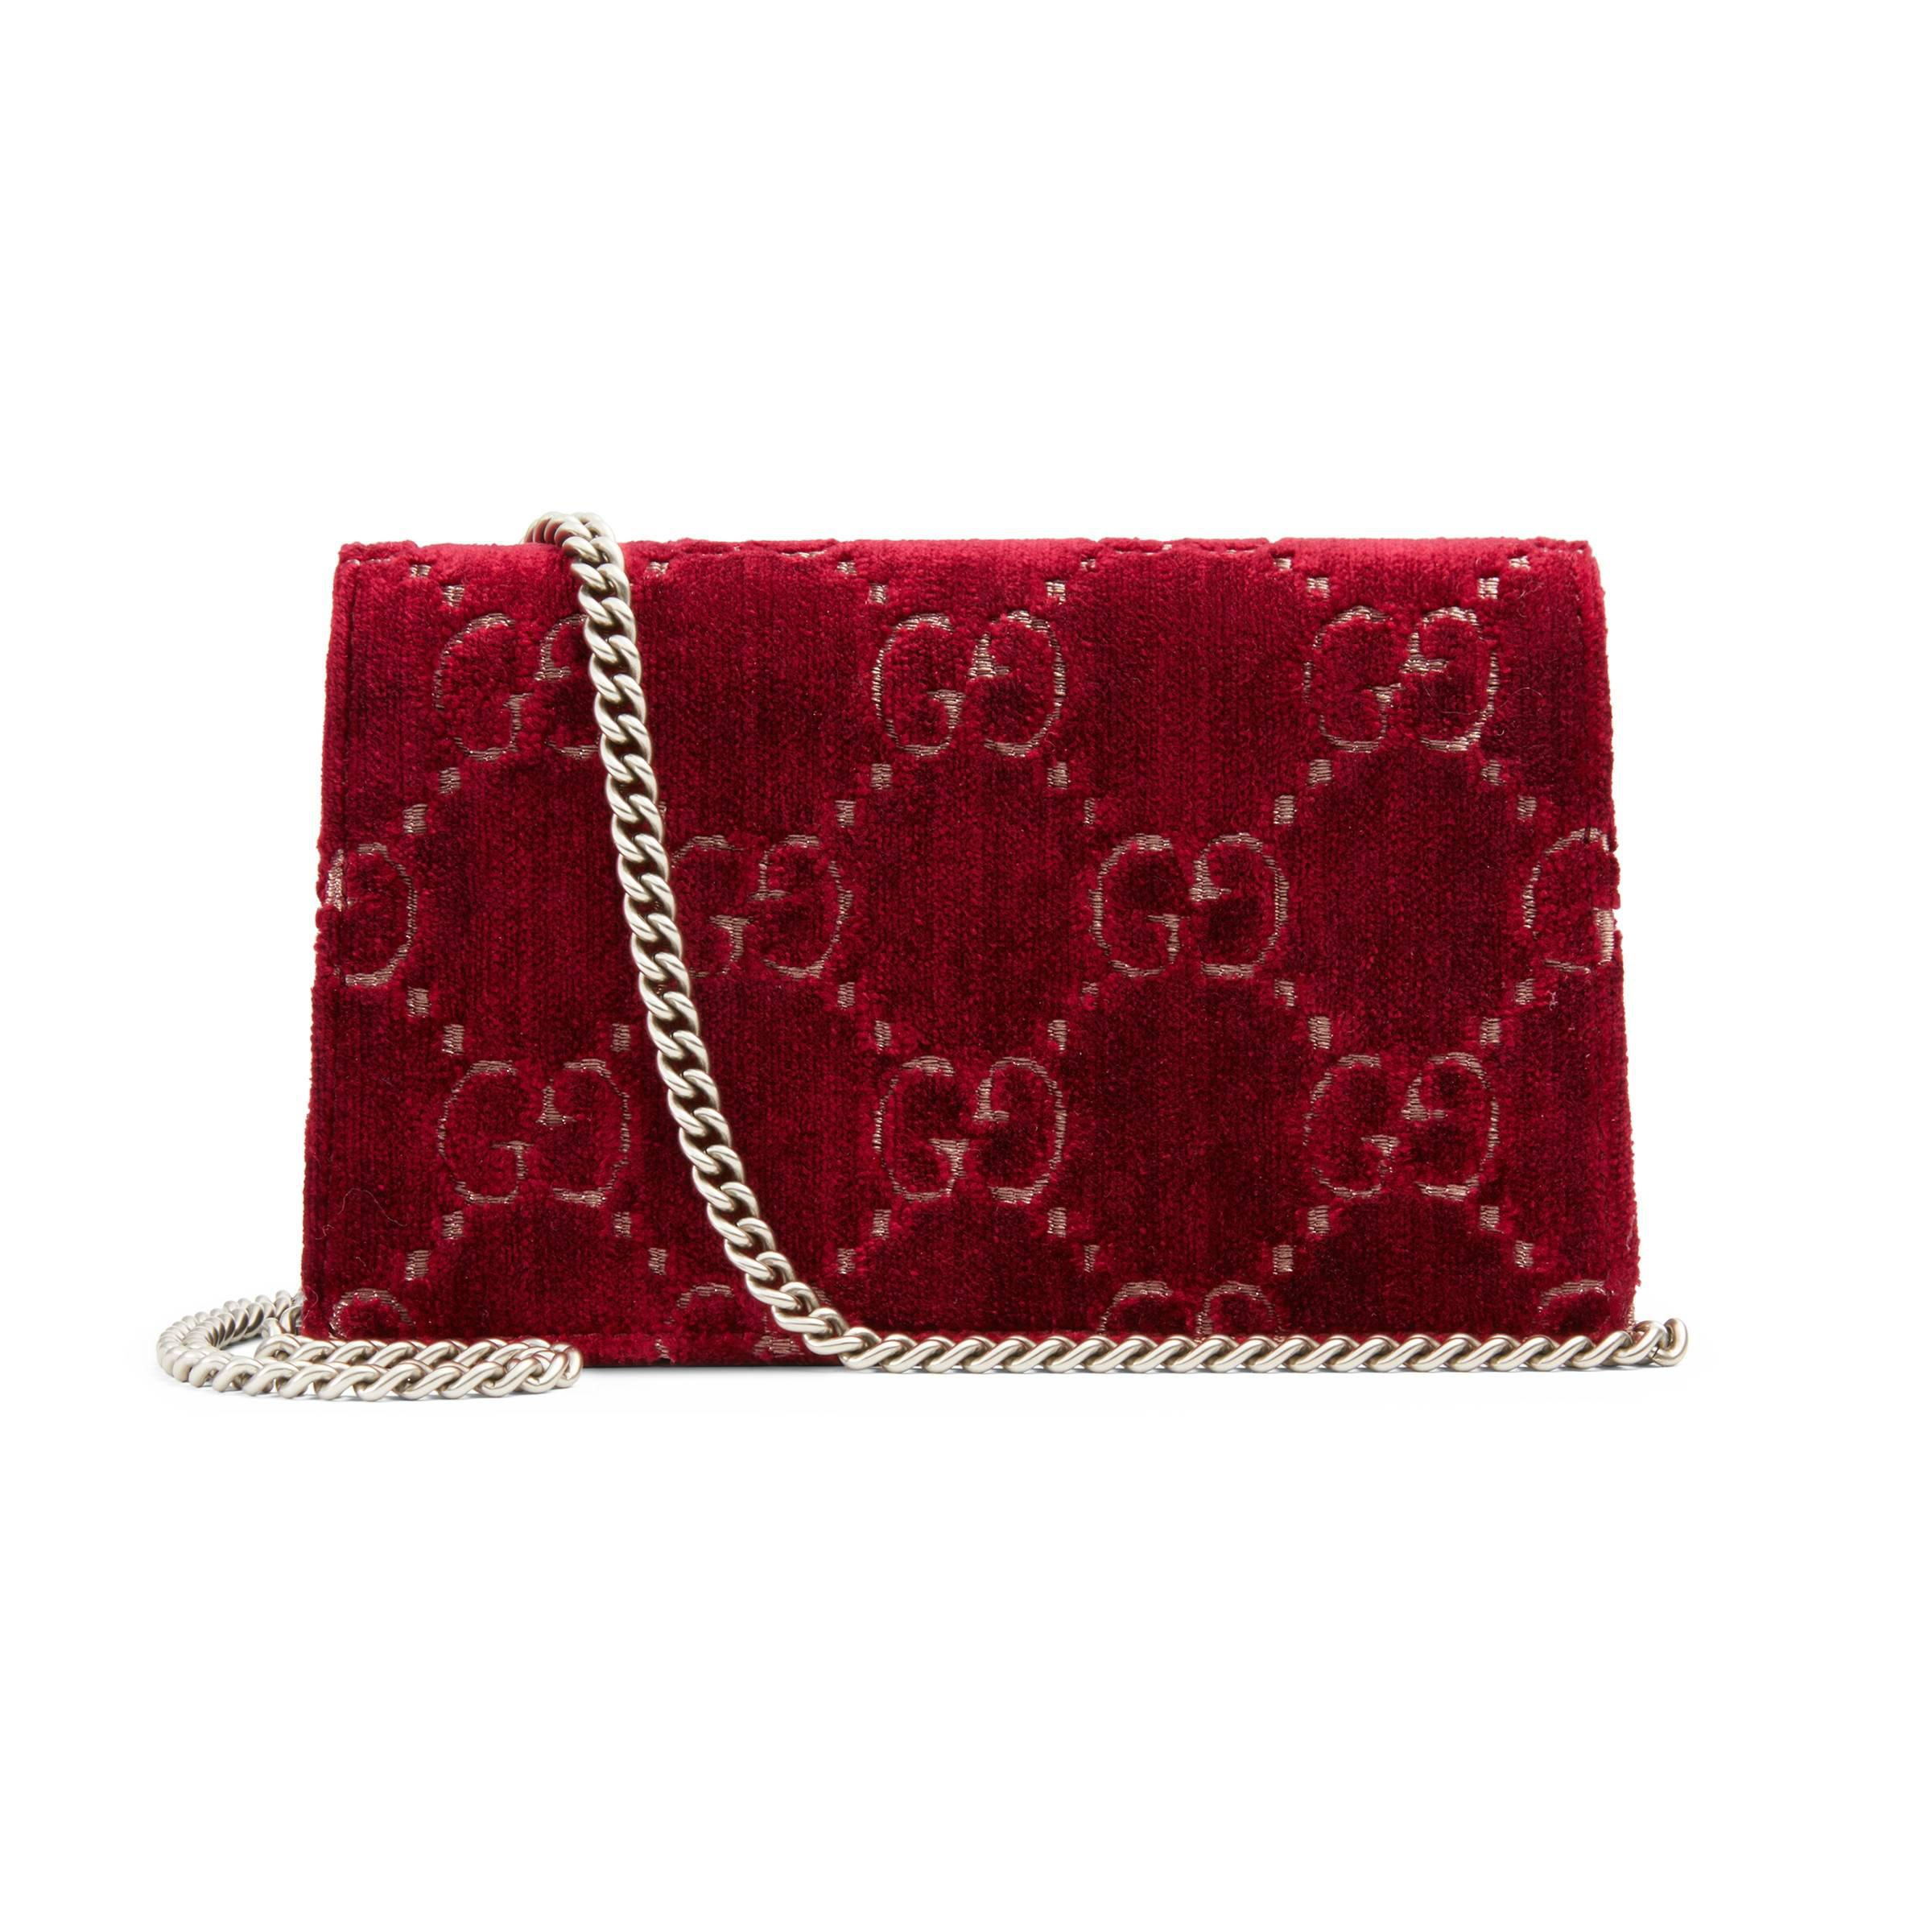 4d005b141b4 Gucci - Red Dionysus Gg Velvet Super Mini Bag - Lyst. View fullscreen